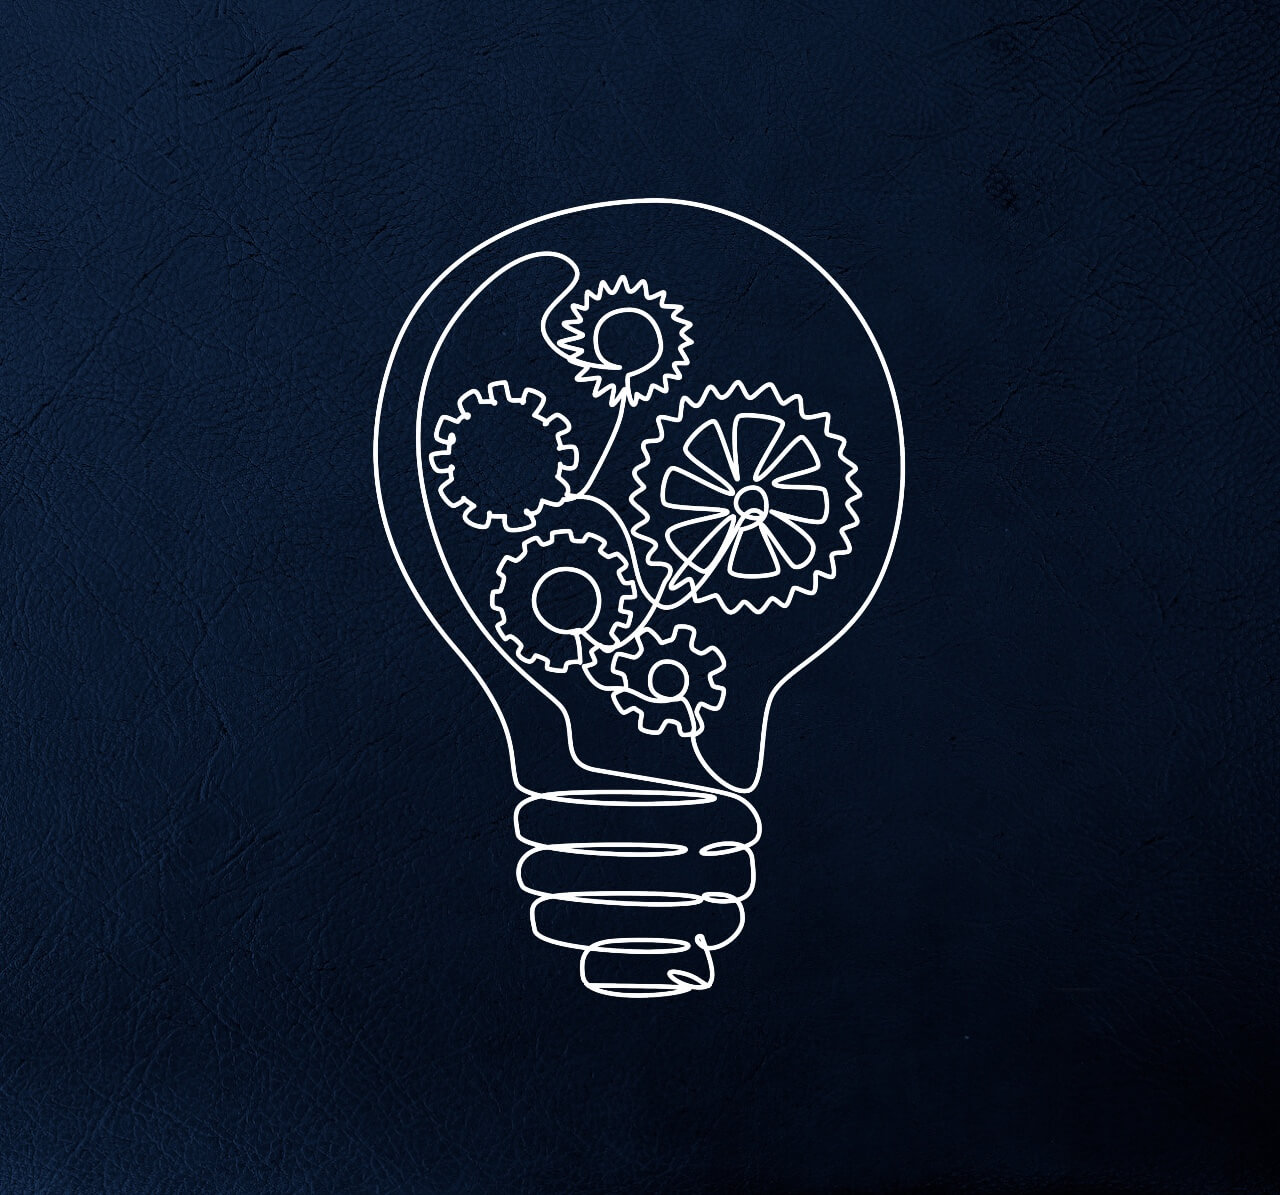 the contours of the light bulb